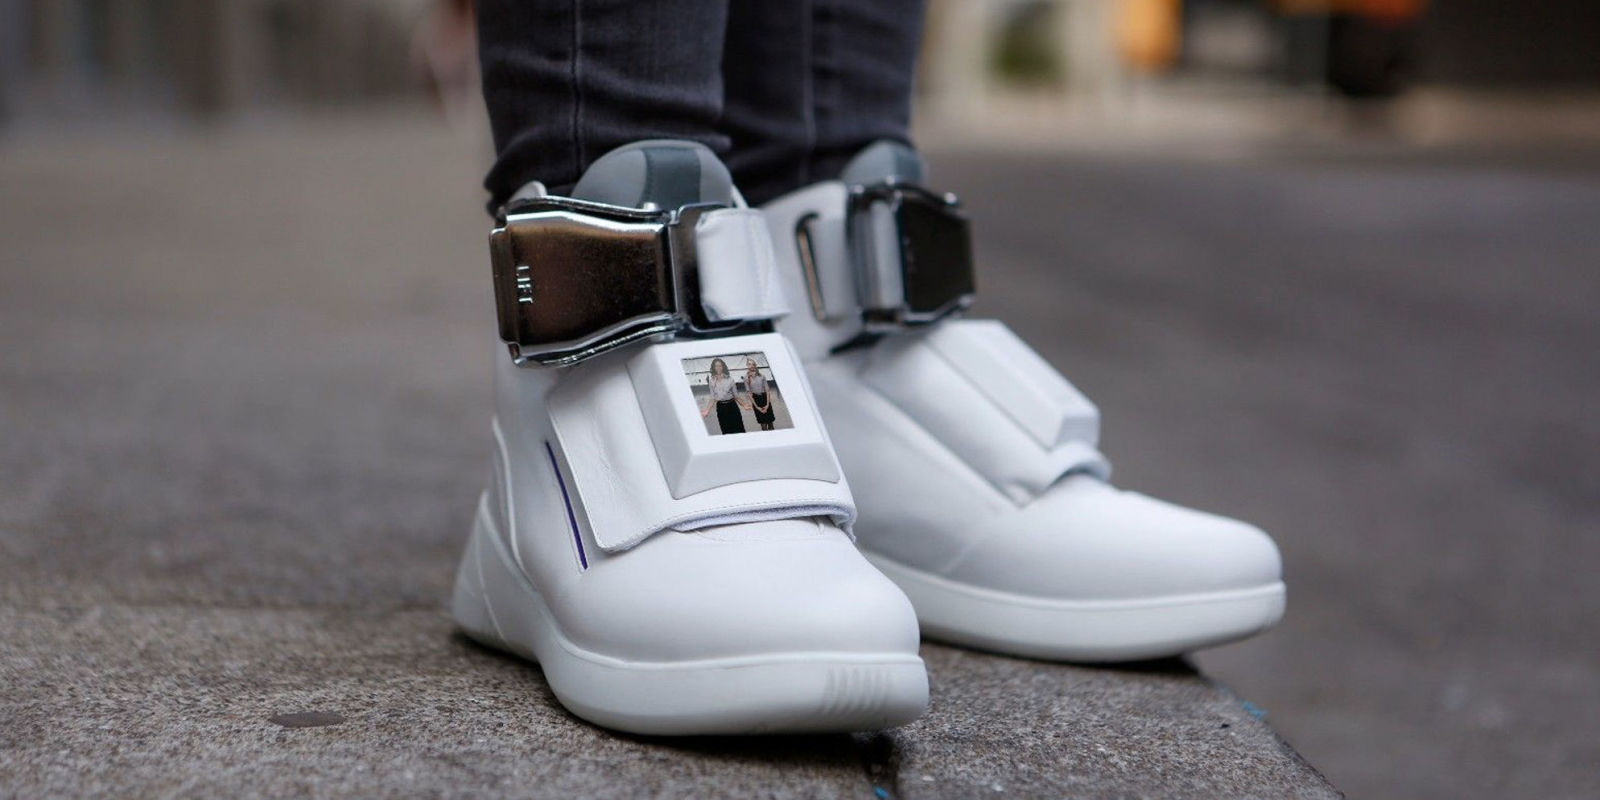 These Over-the-Top Sneakers Feature Built-In TVs